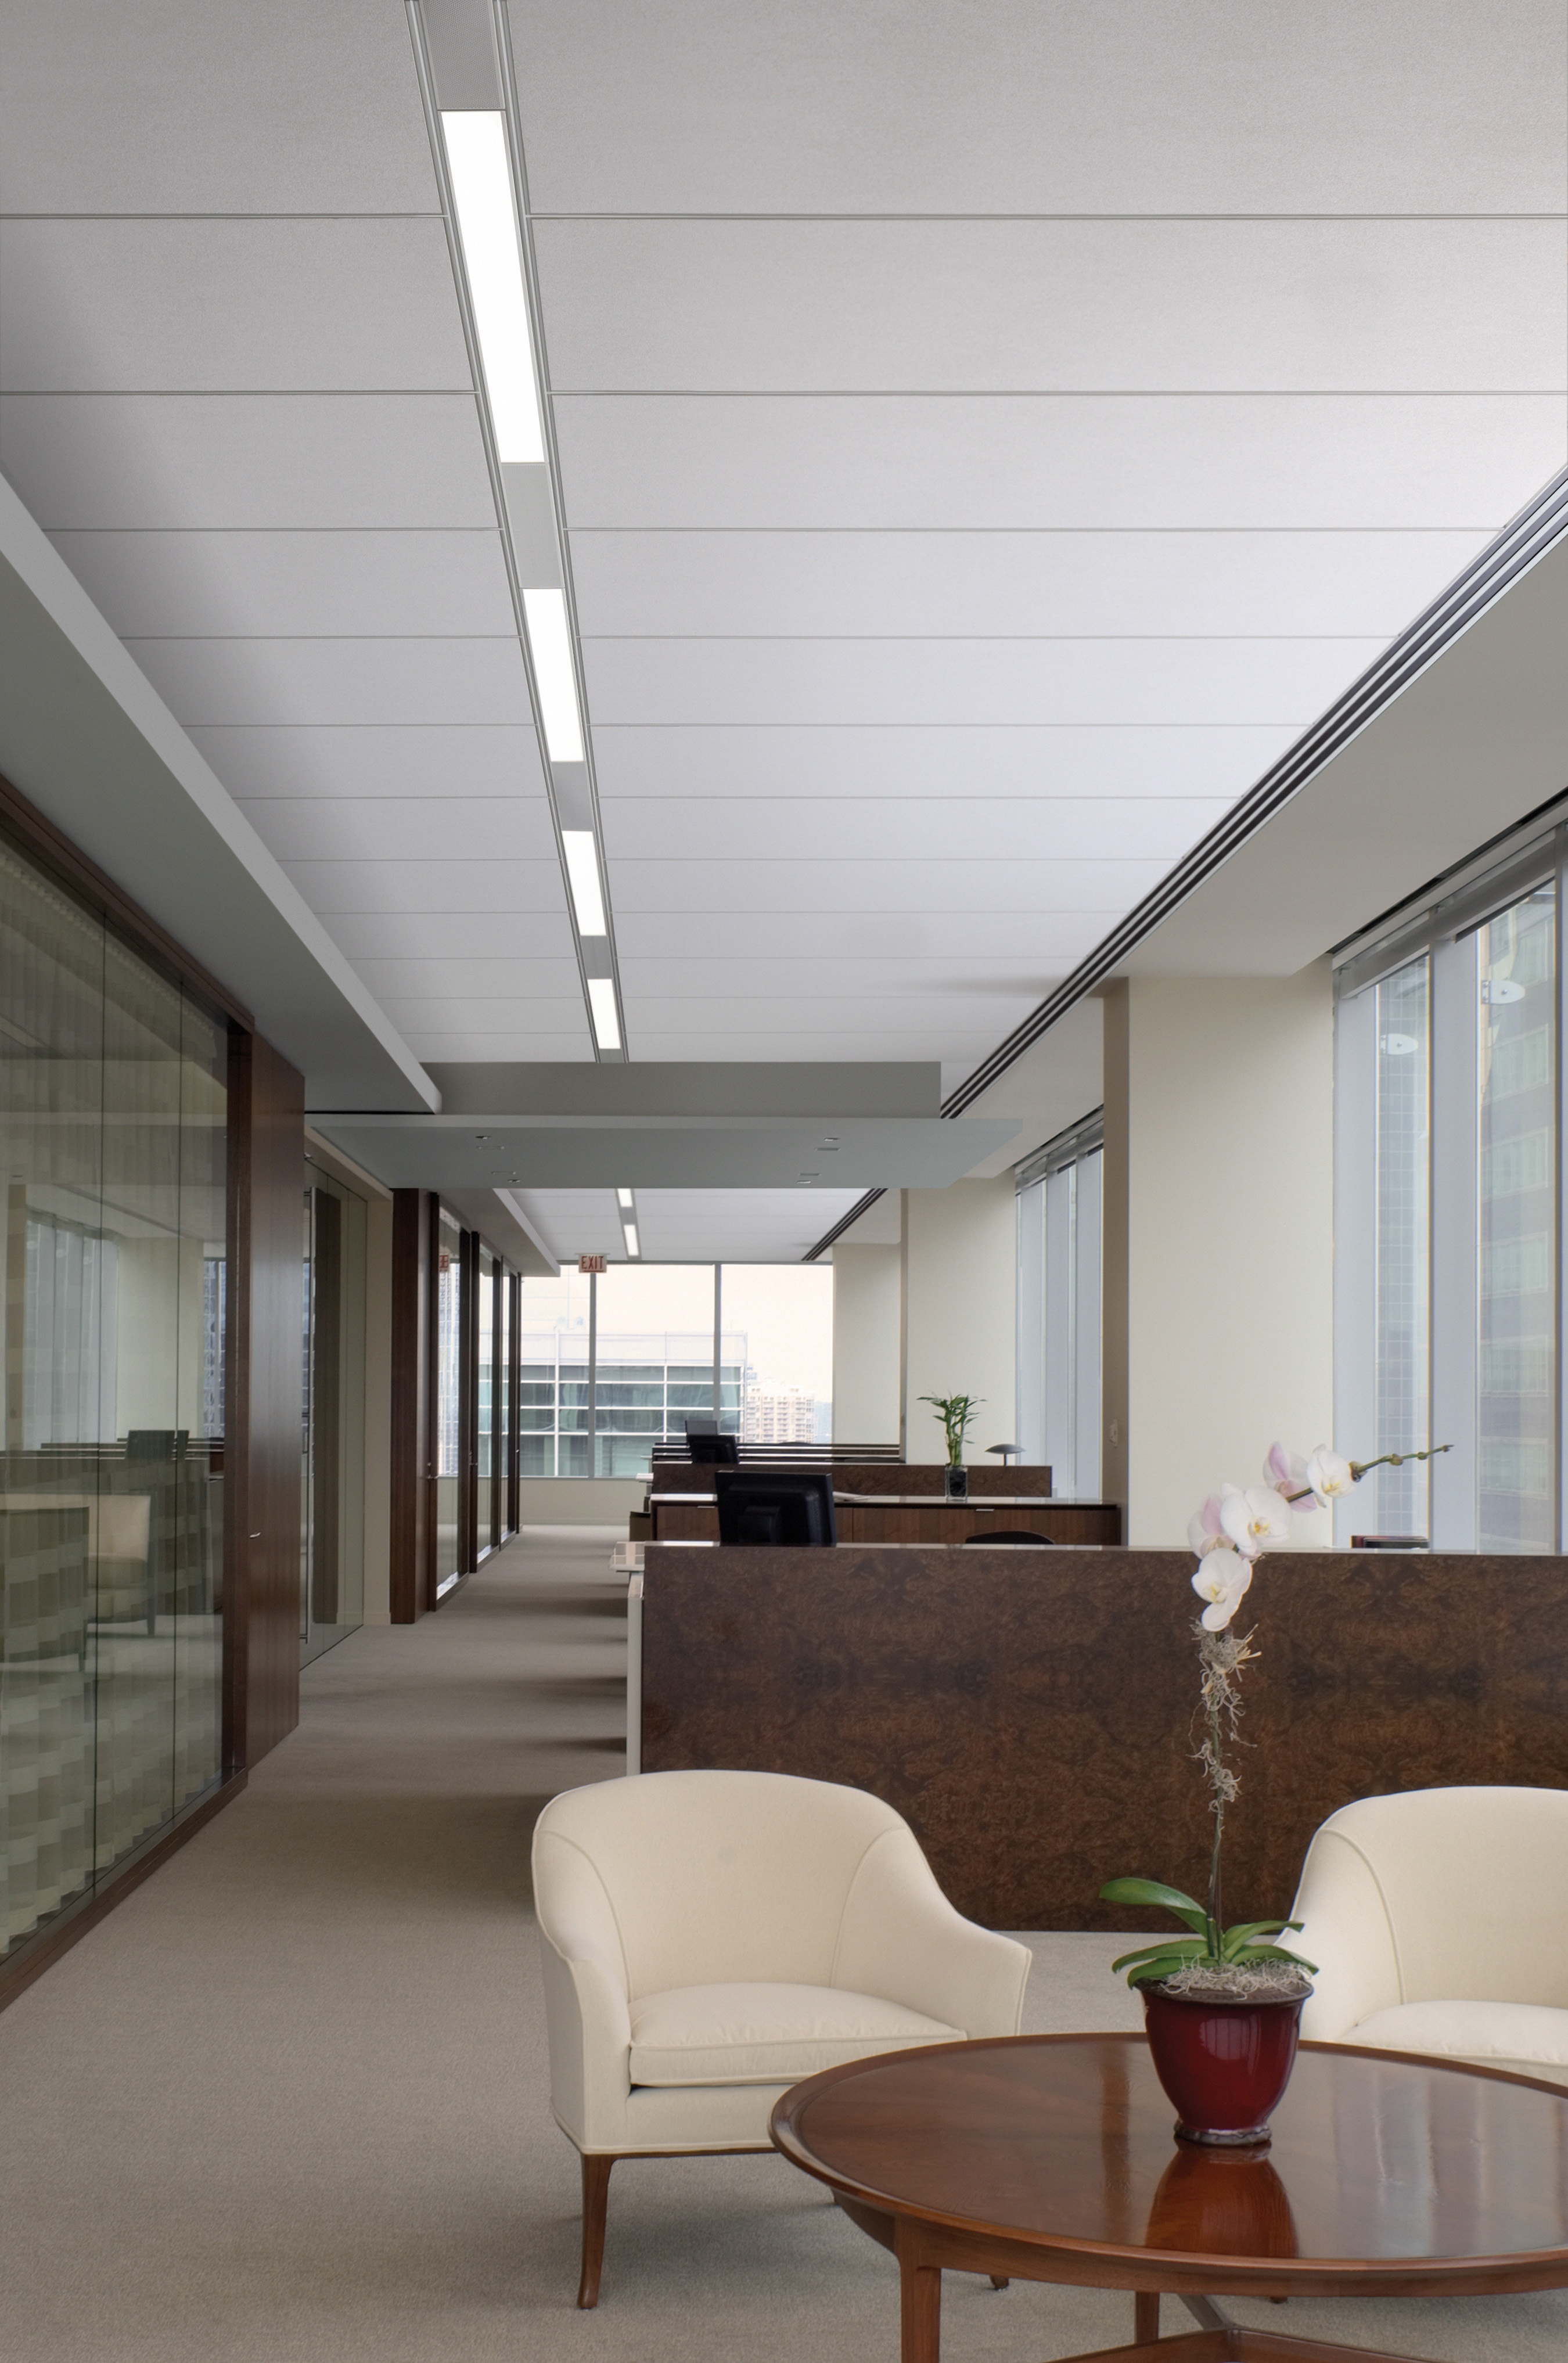 GE Partners With USG Ceilings To Offer Commercial